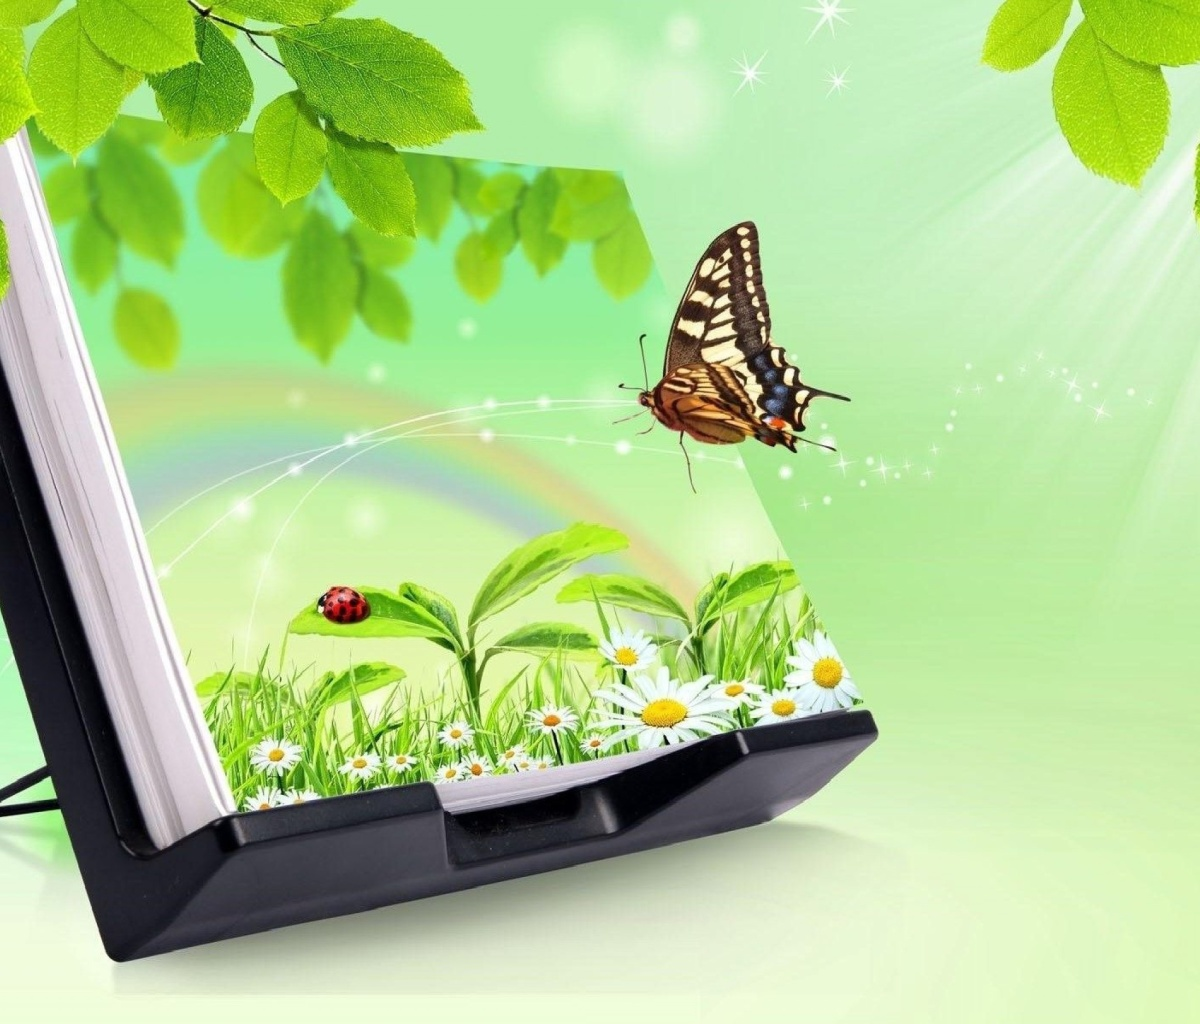 3D Green Nature with Butterfly screenshot #1 1200x1024